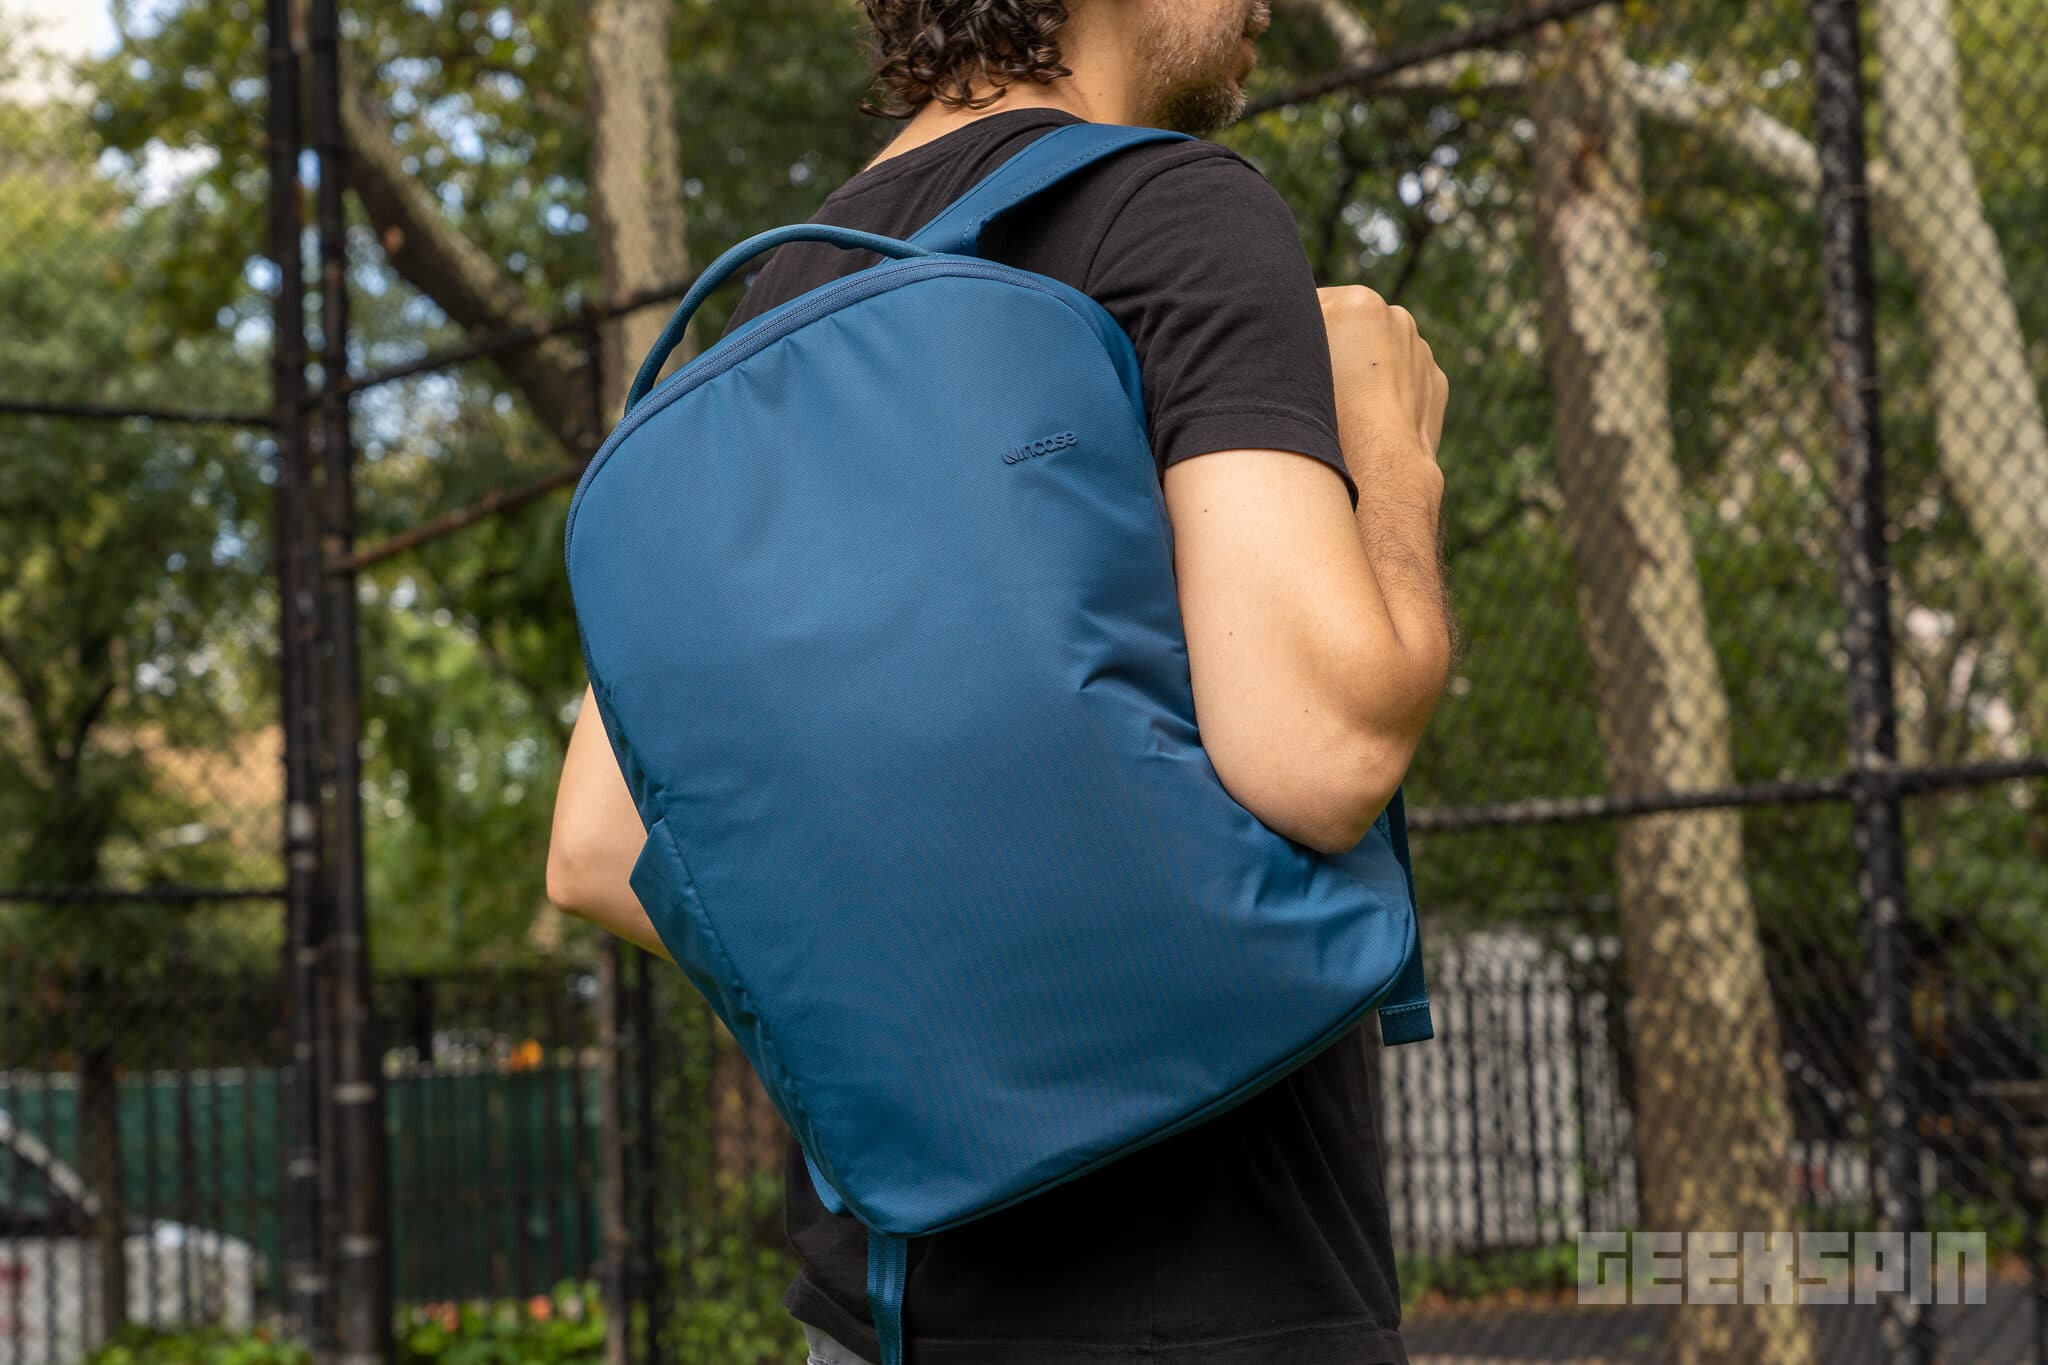 Incase Commuter Backpack with BIONIC